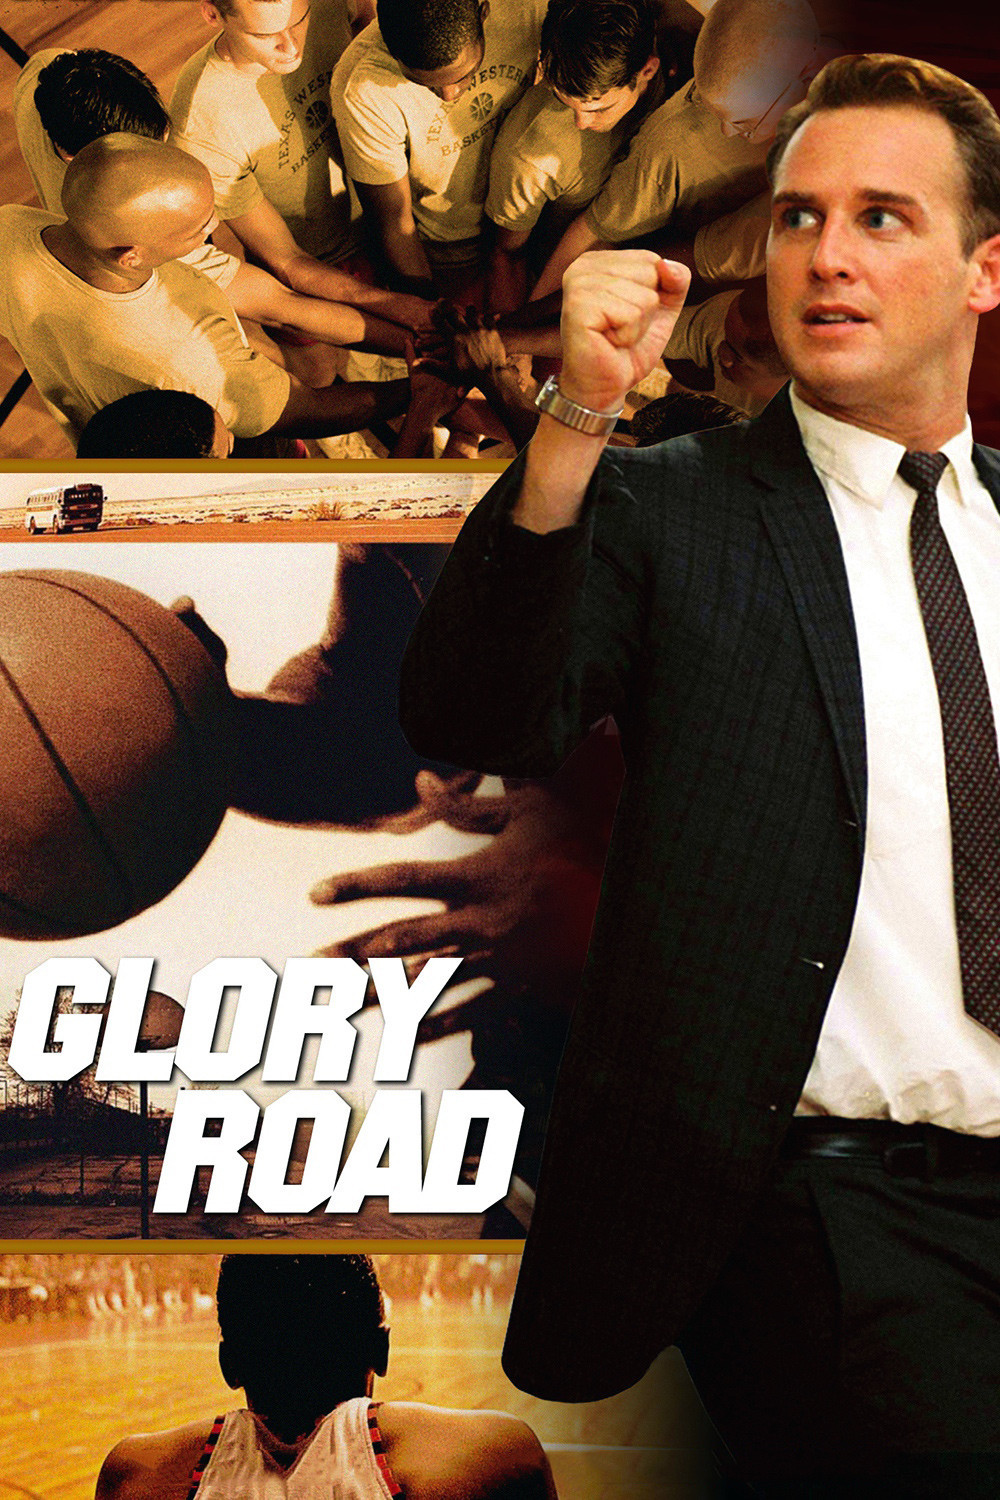 a review of glory road a movie by james gartner More movie reviews by dhani james gartner stars: josh glory road is a true story that allows the conversation to emerge so that we can continue to mend.